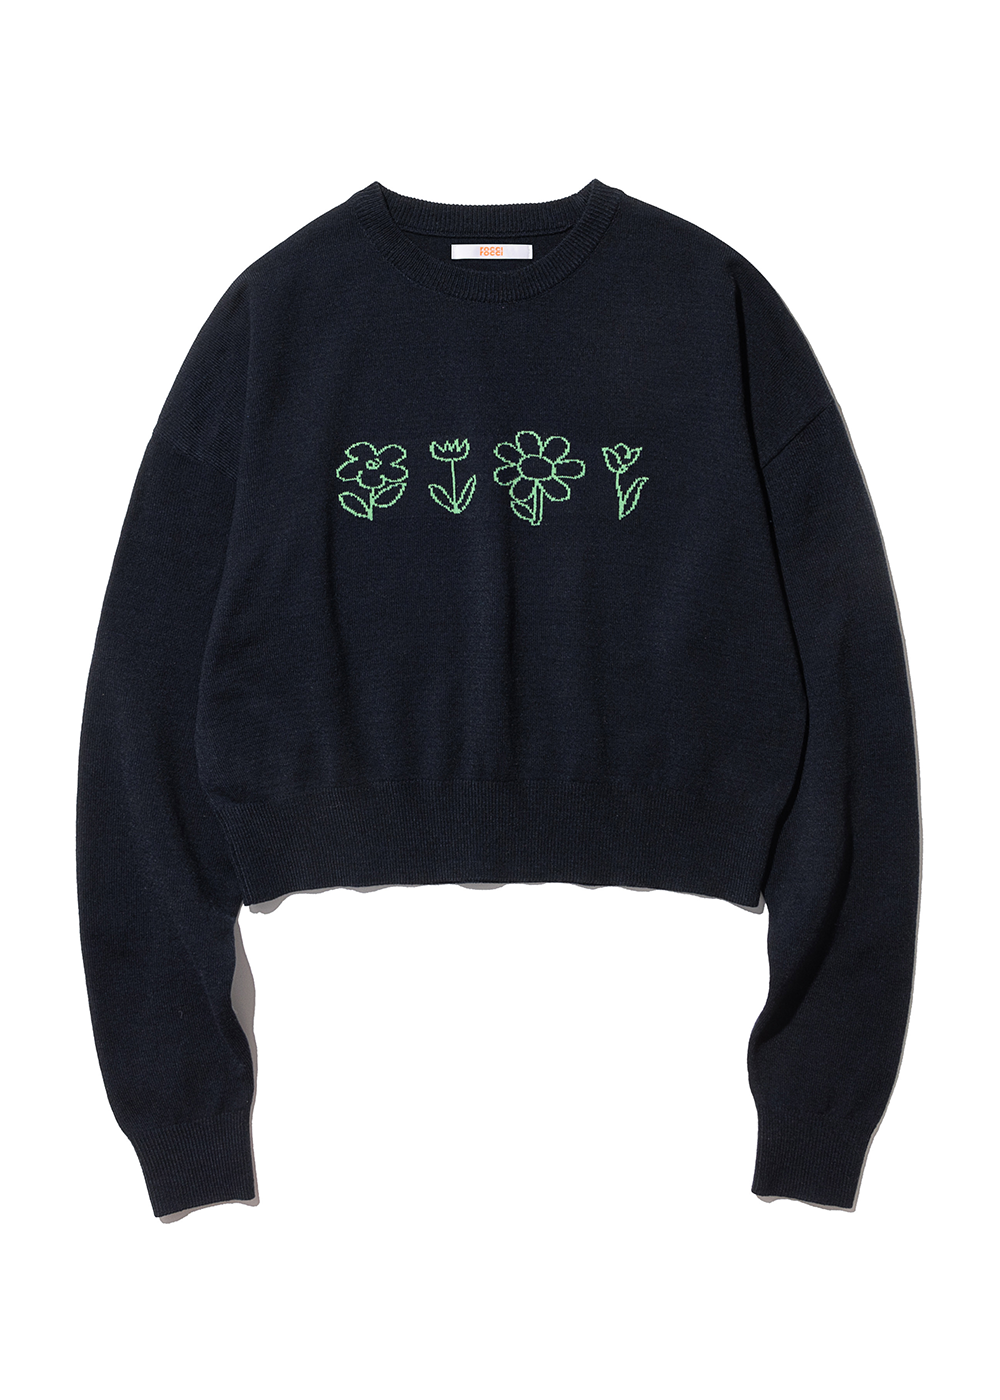 [3/11예약배송] Flower Drawing Knit [NAVY][3/11예약배송] Flower Drawing Knit [NAVY]자체브랜드